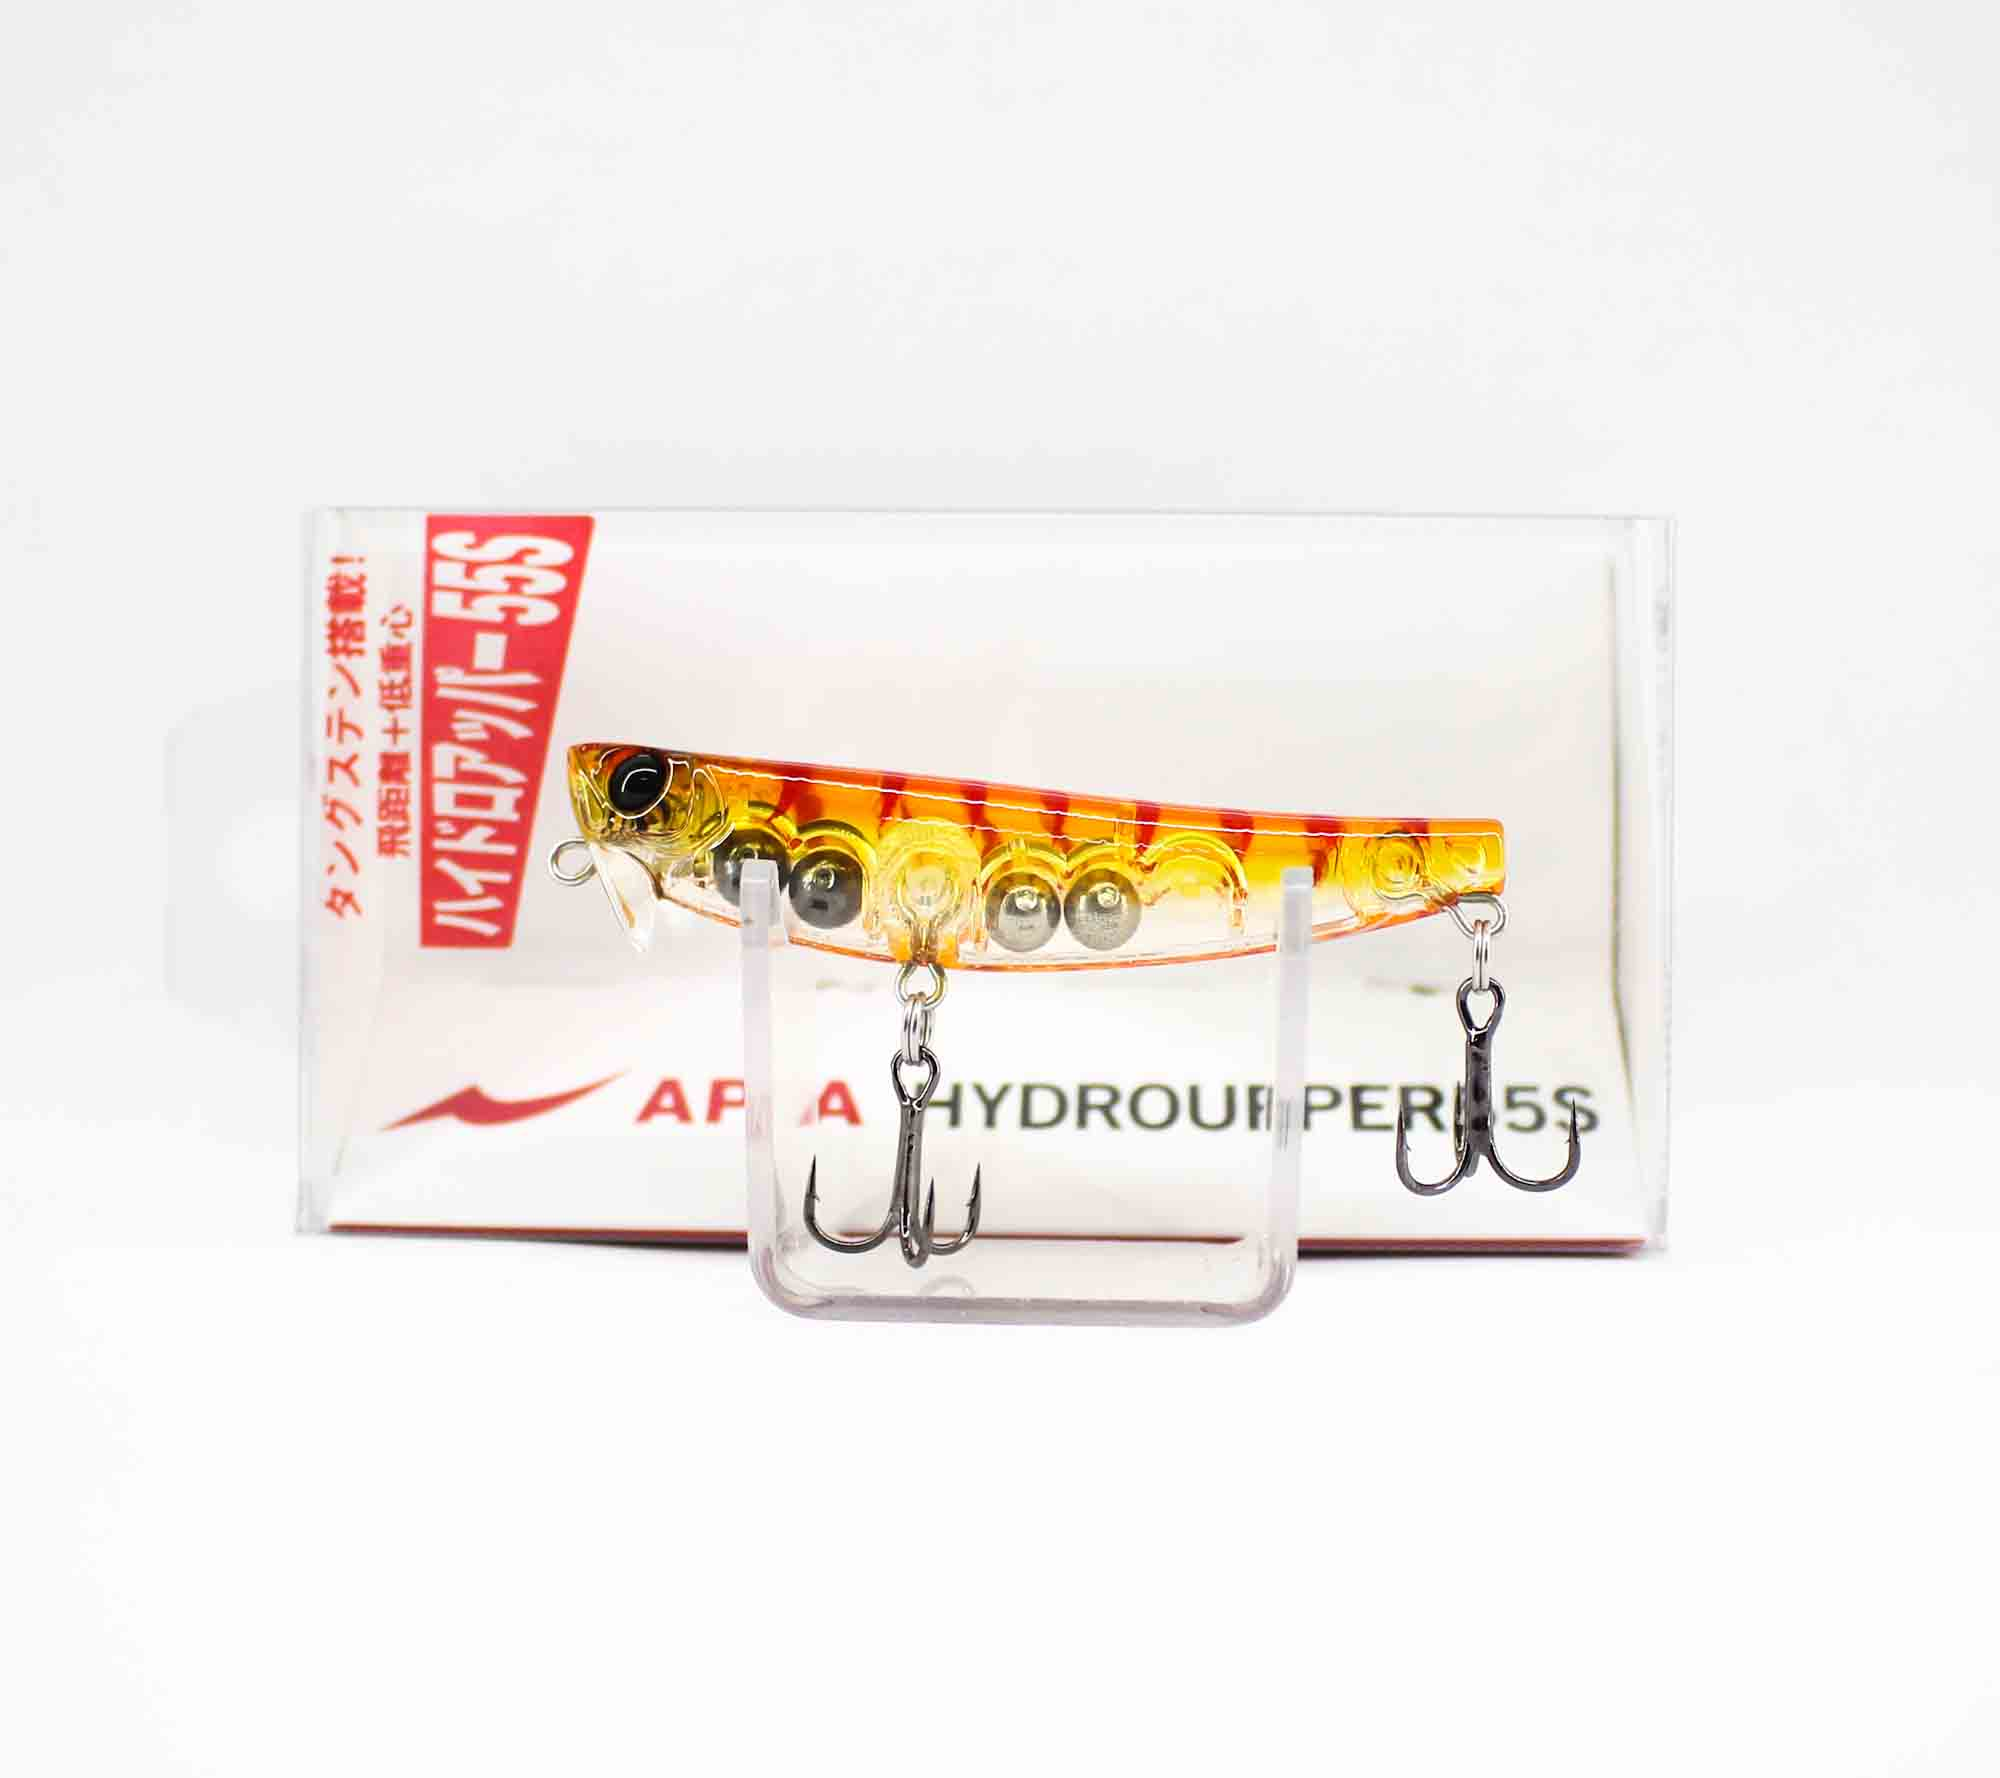 Apia Hydroupper 55S Sinking Lure 05 (6364)